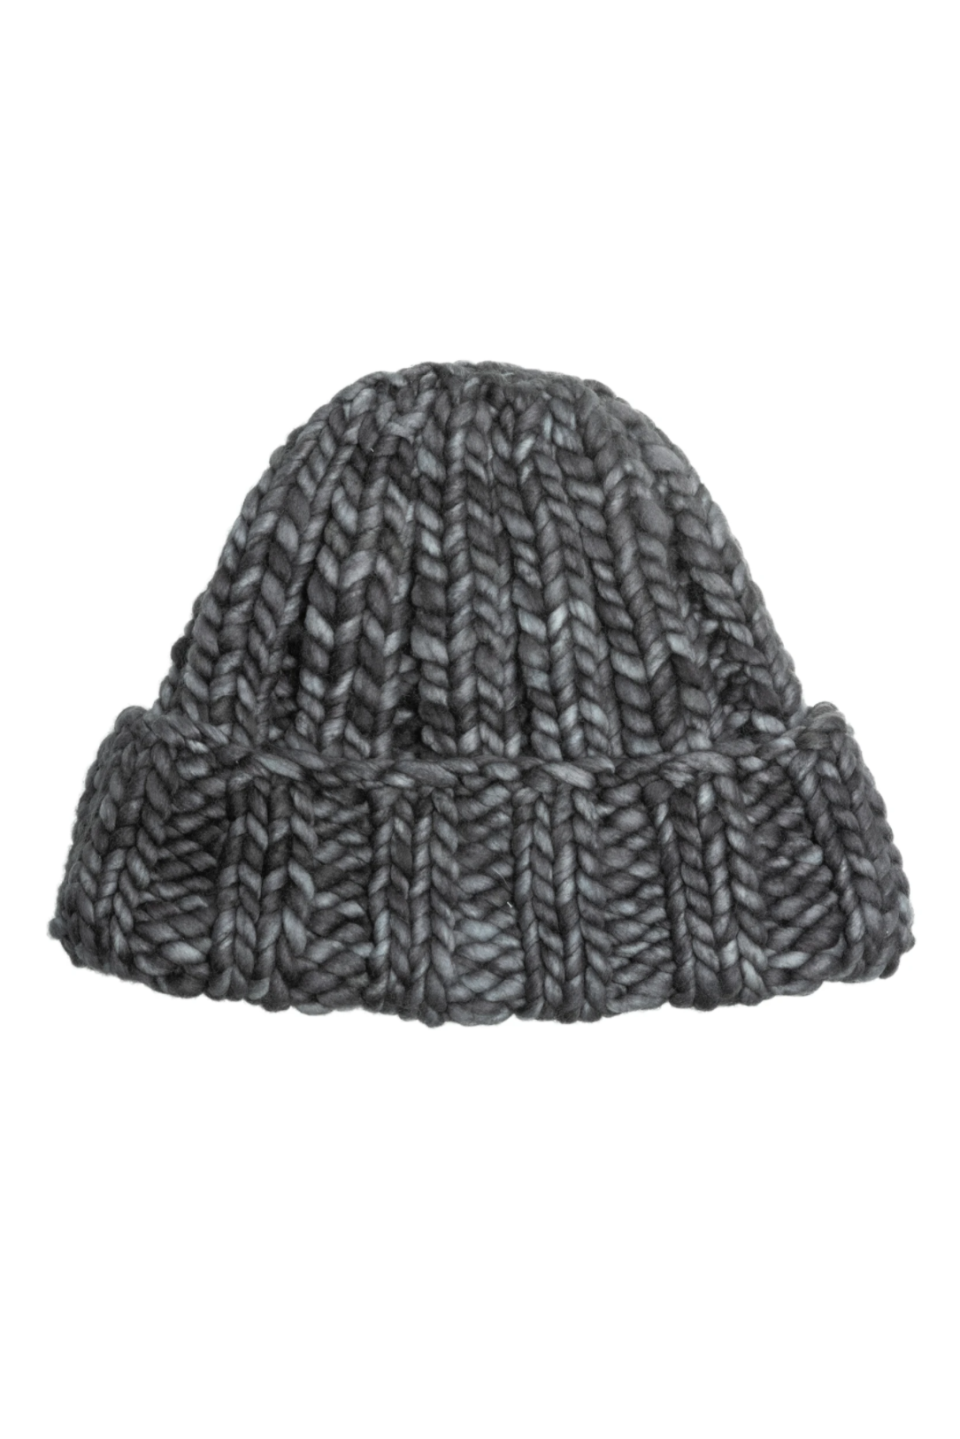 "<p><strong>Clyde</strong></p><p>clyde.world</p><p><strong>$168.00</strong></p><p><a href=""https://clyde.world/collections/knit-hats/products/fold-hat-in-smoke-purple"" rel=""nofollow noopener"" target=""_blank"" data-ylk=""slk:SHOP IT"" class=""link rapid-noclick-resp"">SHOP IT</a></p><p>This chunky hand knit beanie is hand dyed and made up of soft merino wool that'll keep you warm no matter what. <br></p>"